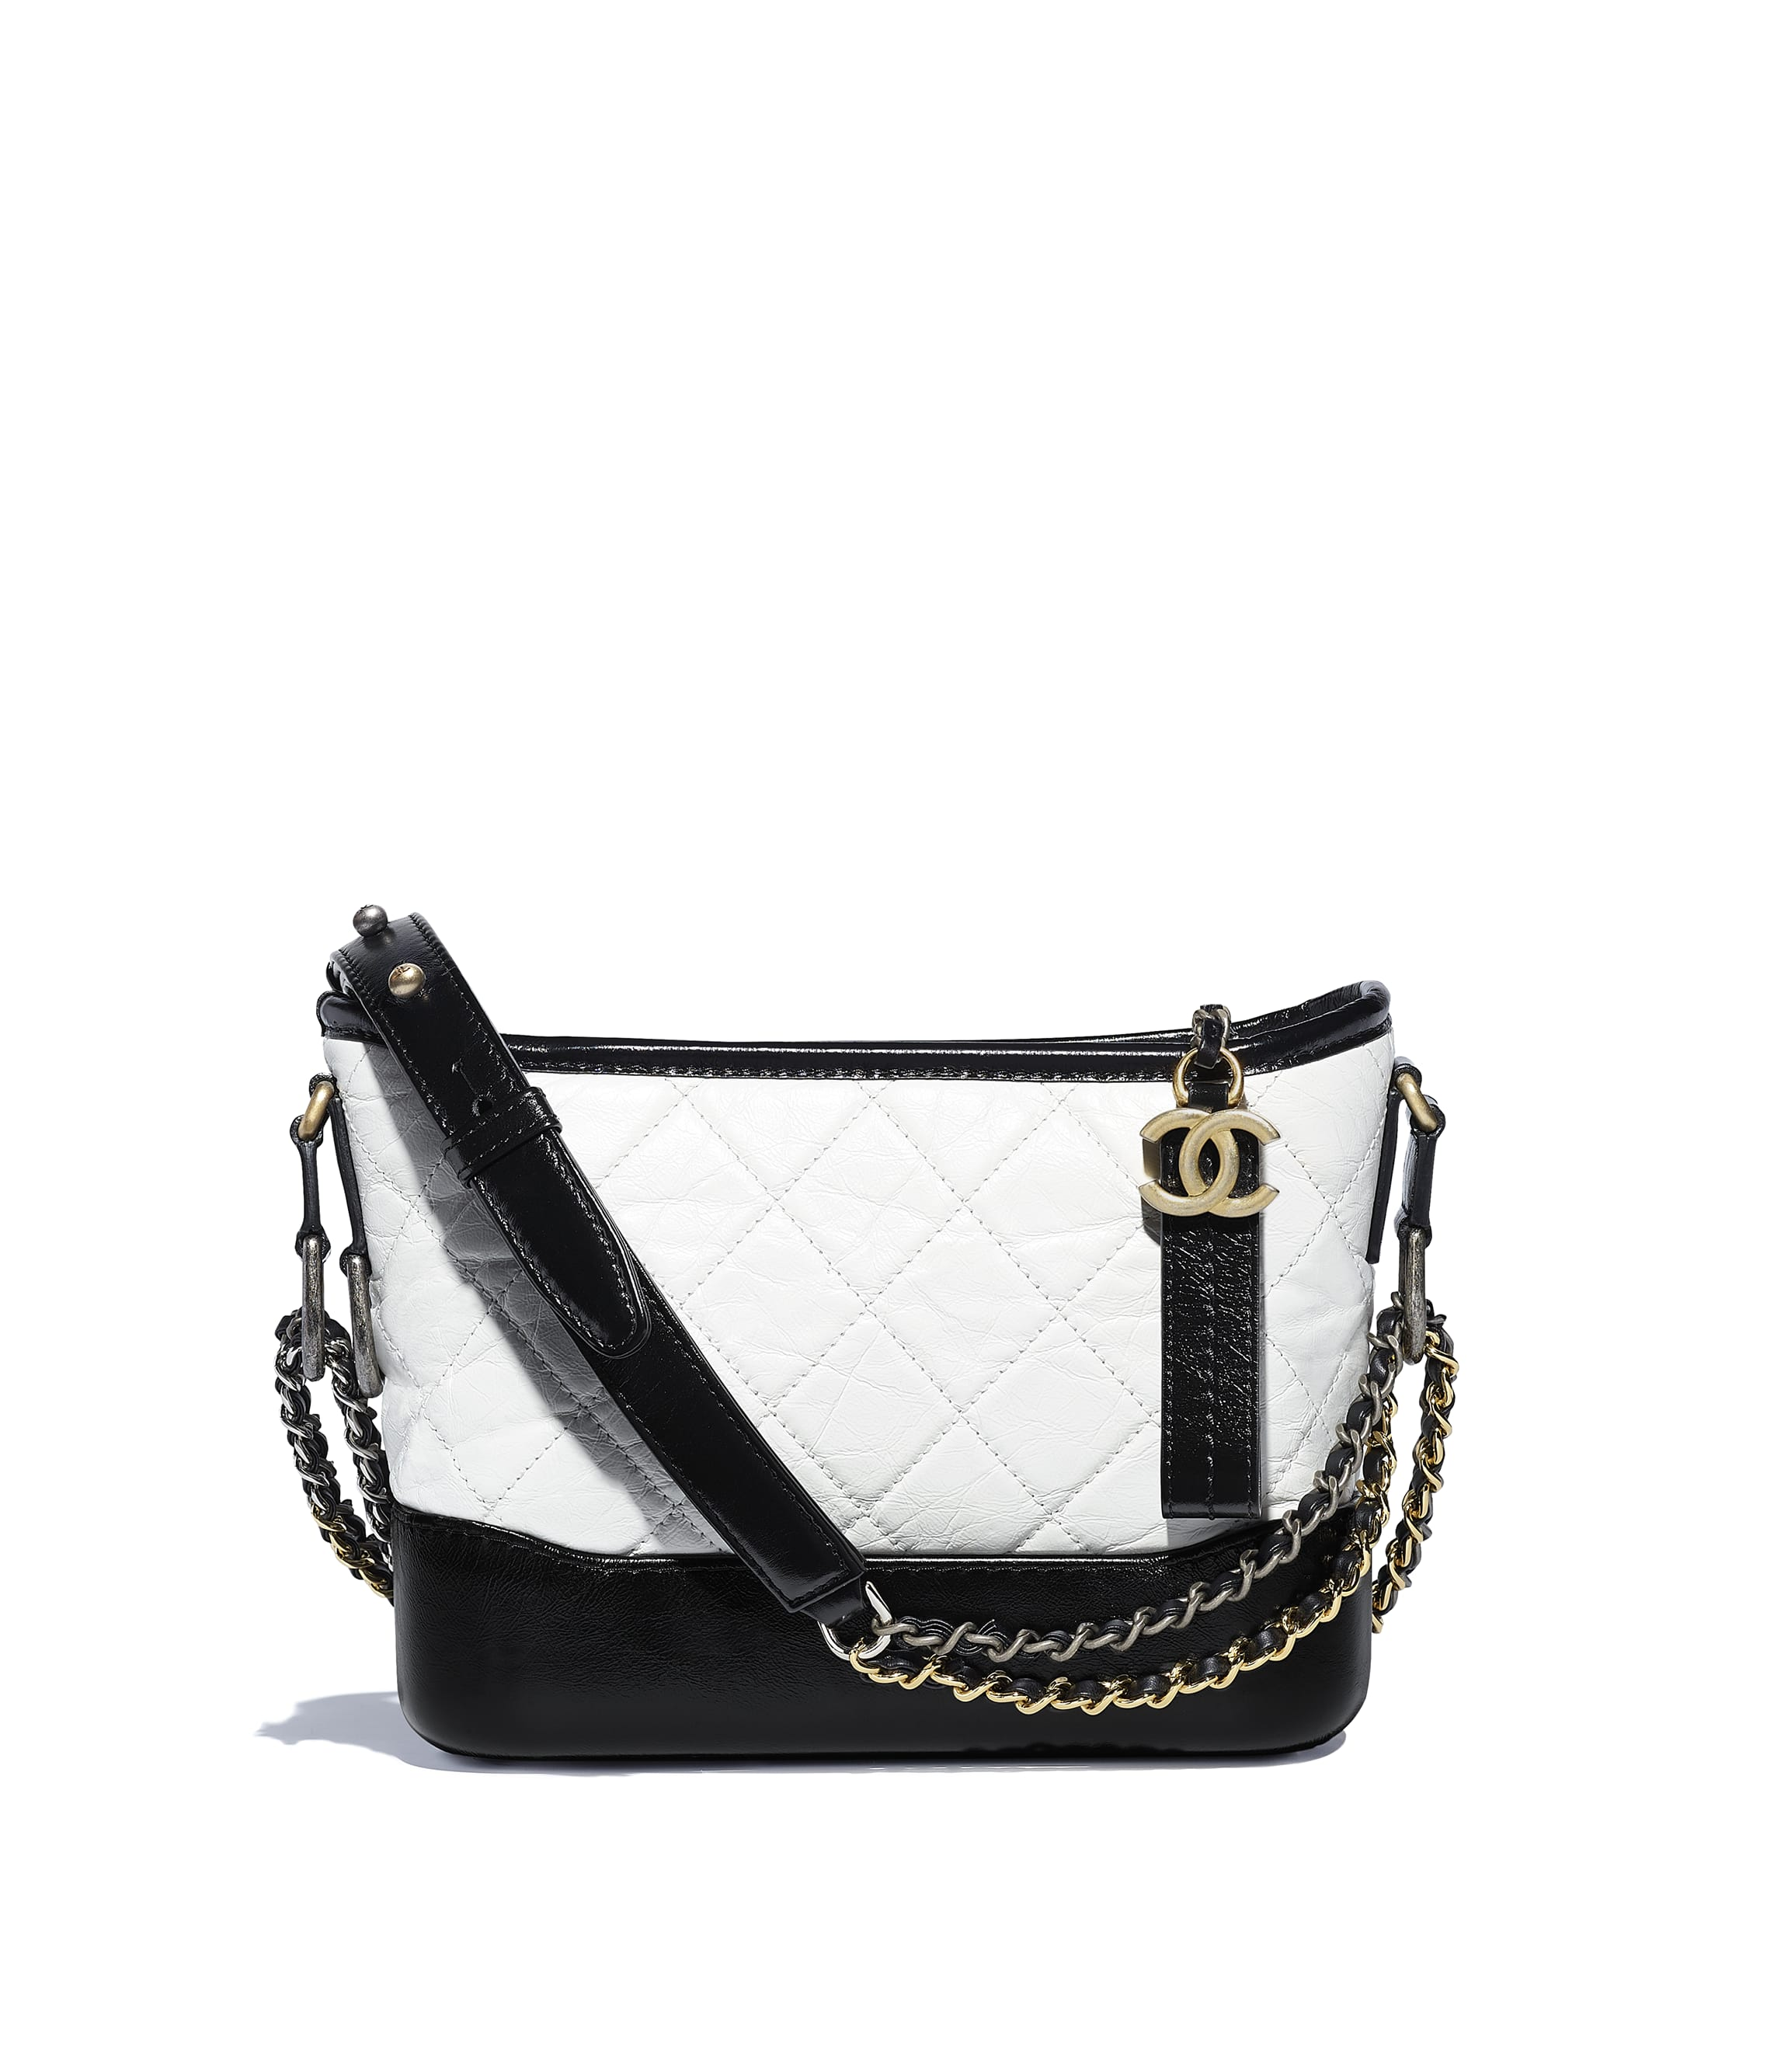 698e73f614c535 CHANEL'S GABRIELLE Small Hobo Bag, aged calfskin, smooth calfskin ...